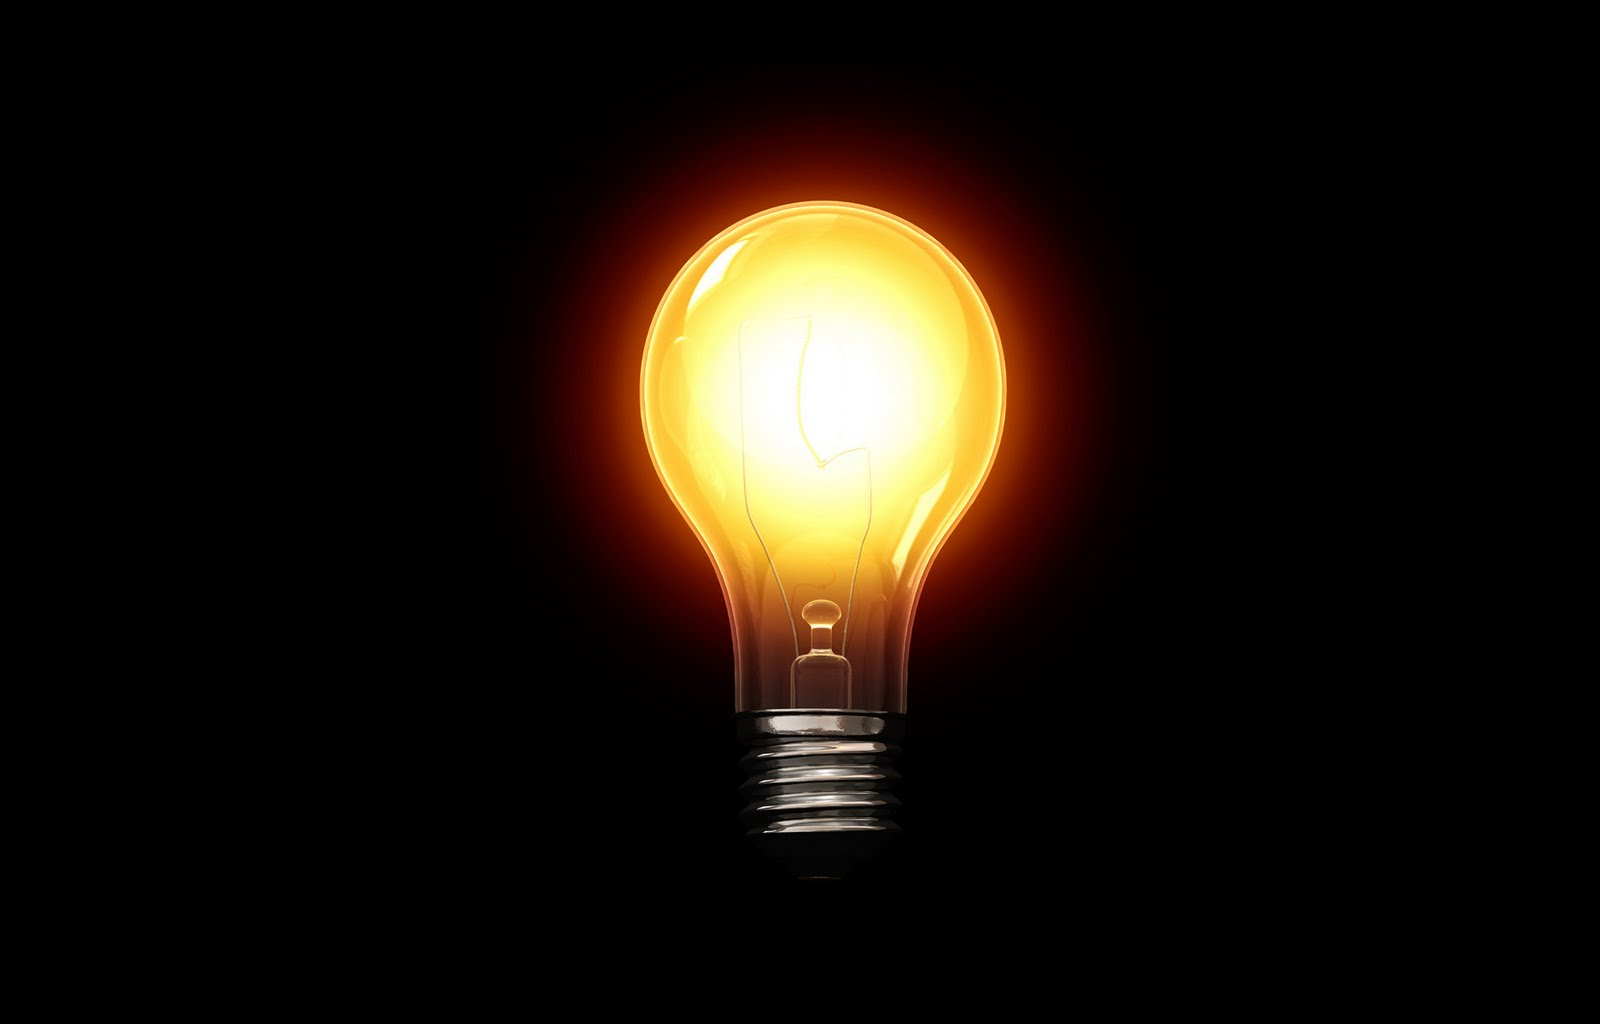 The incandescent light bulb great american things A light bulb